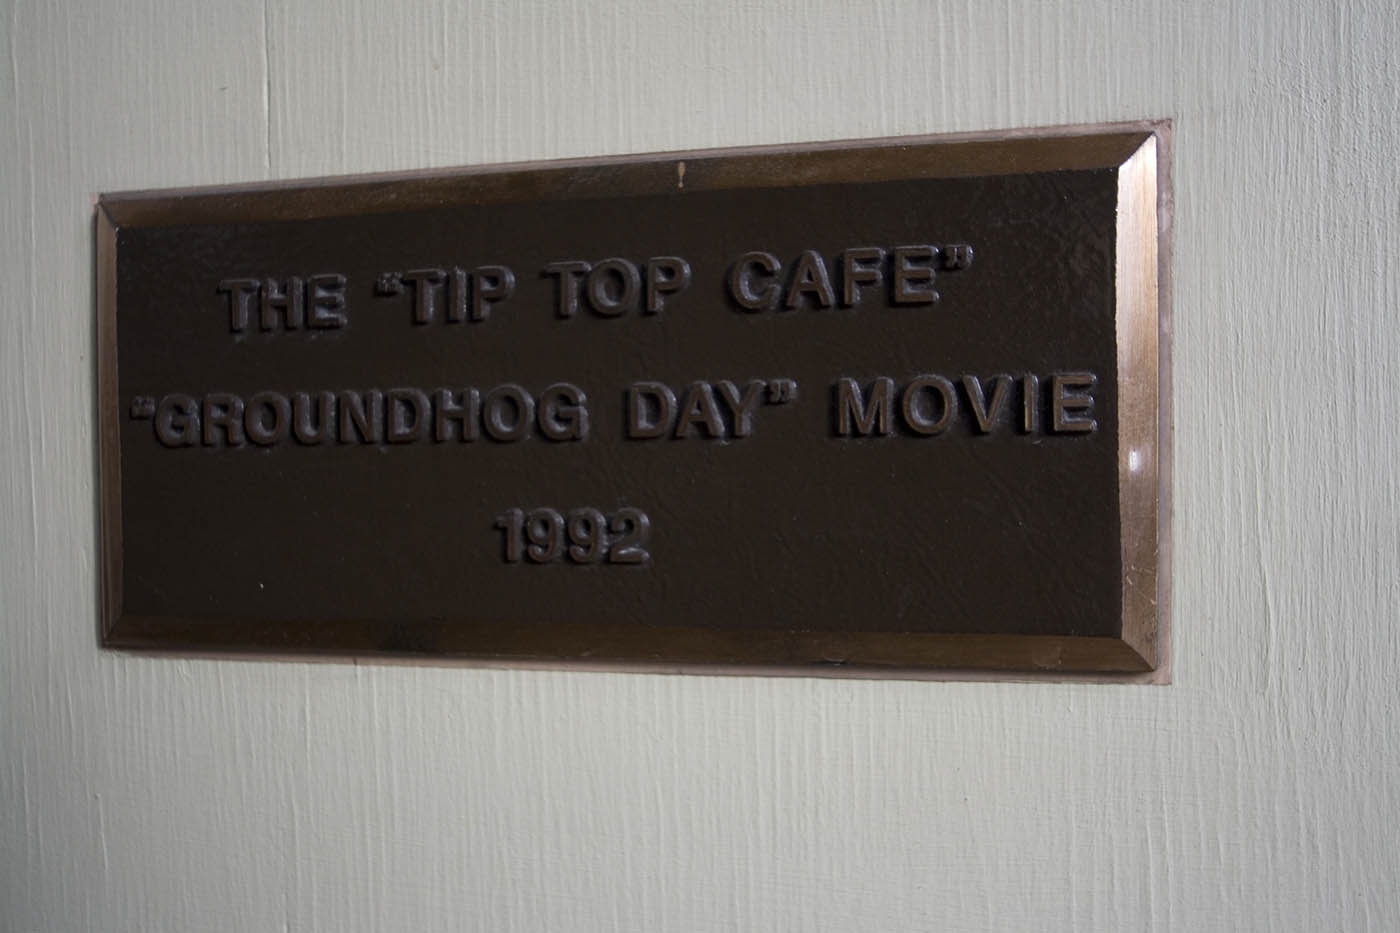 Tip Top Cafe - Groundhog Day Movie Filming Locations in Woodstock, Illinois